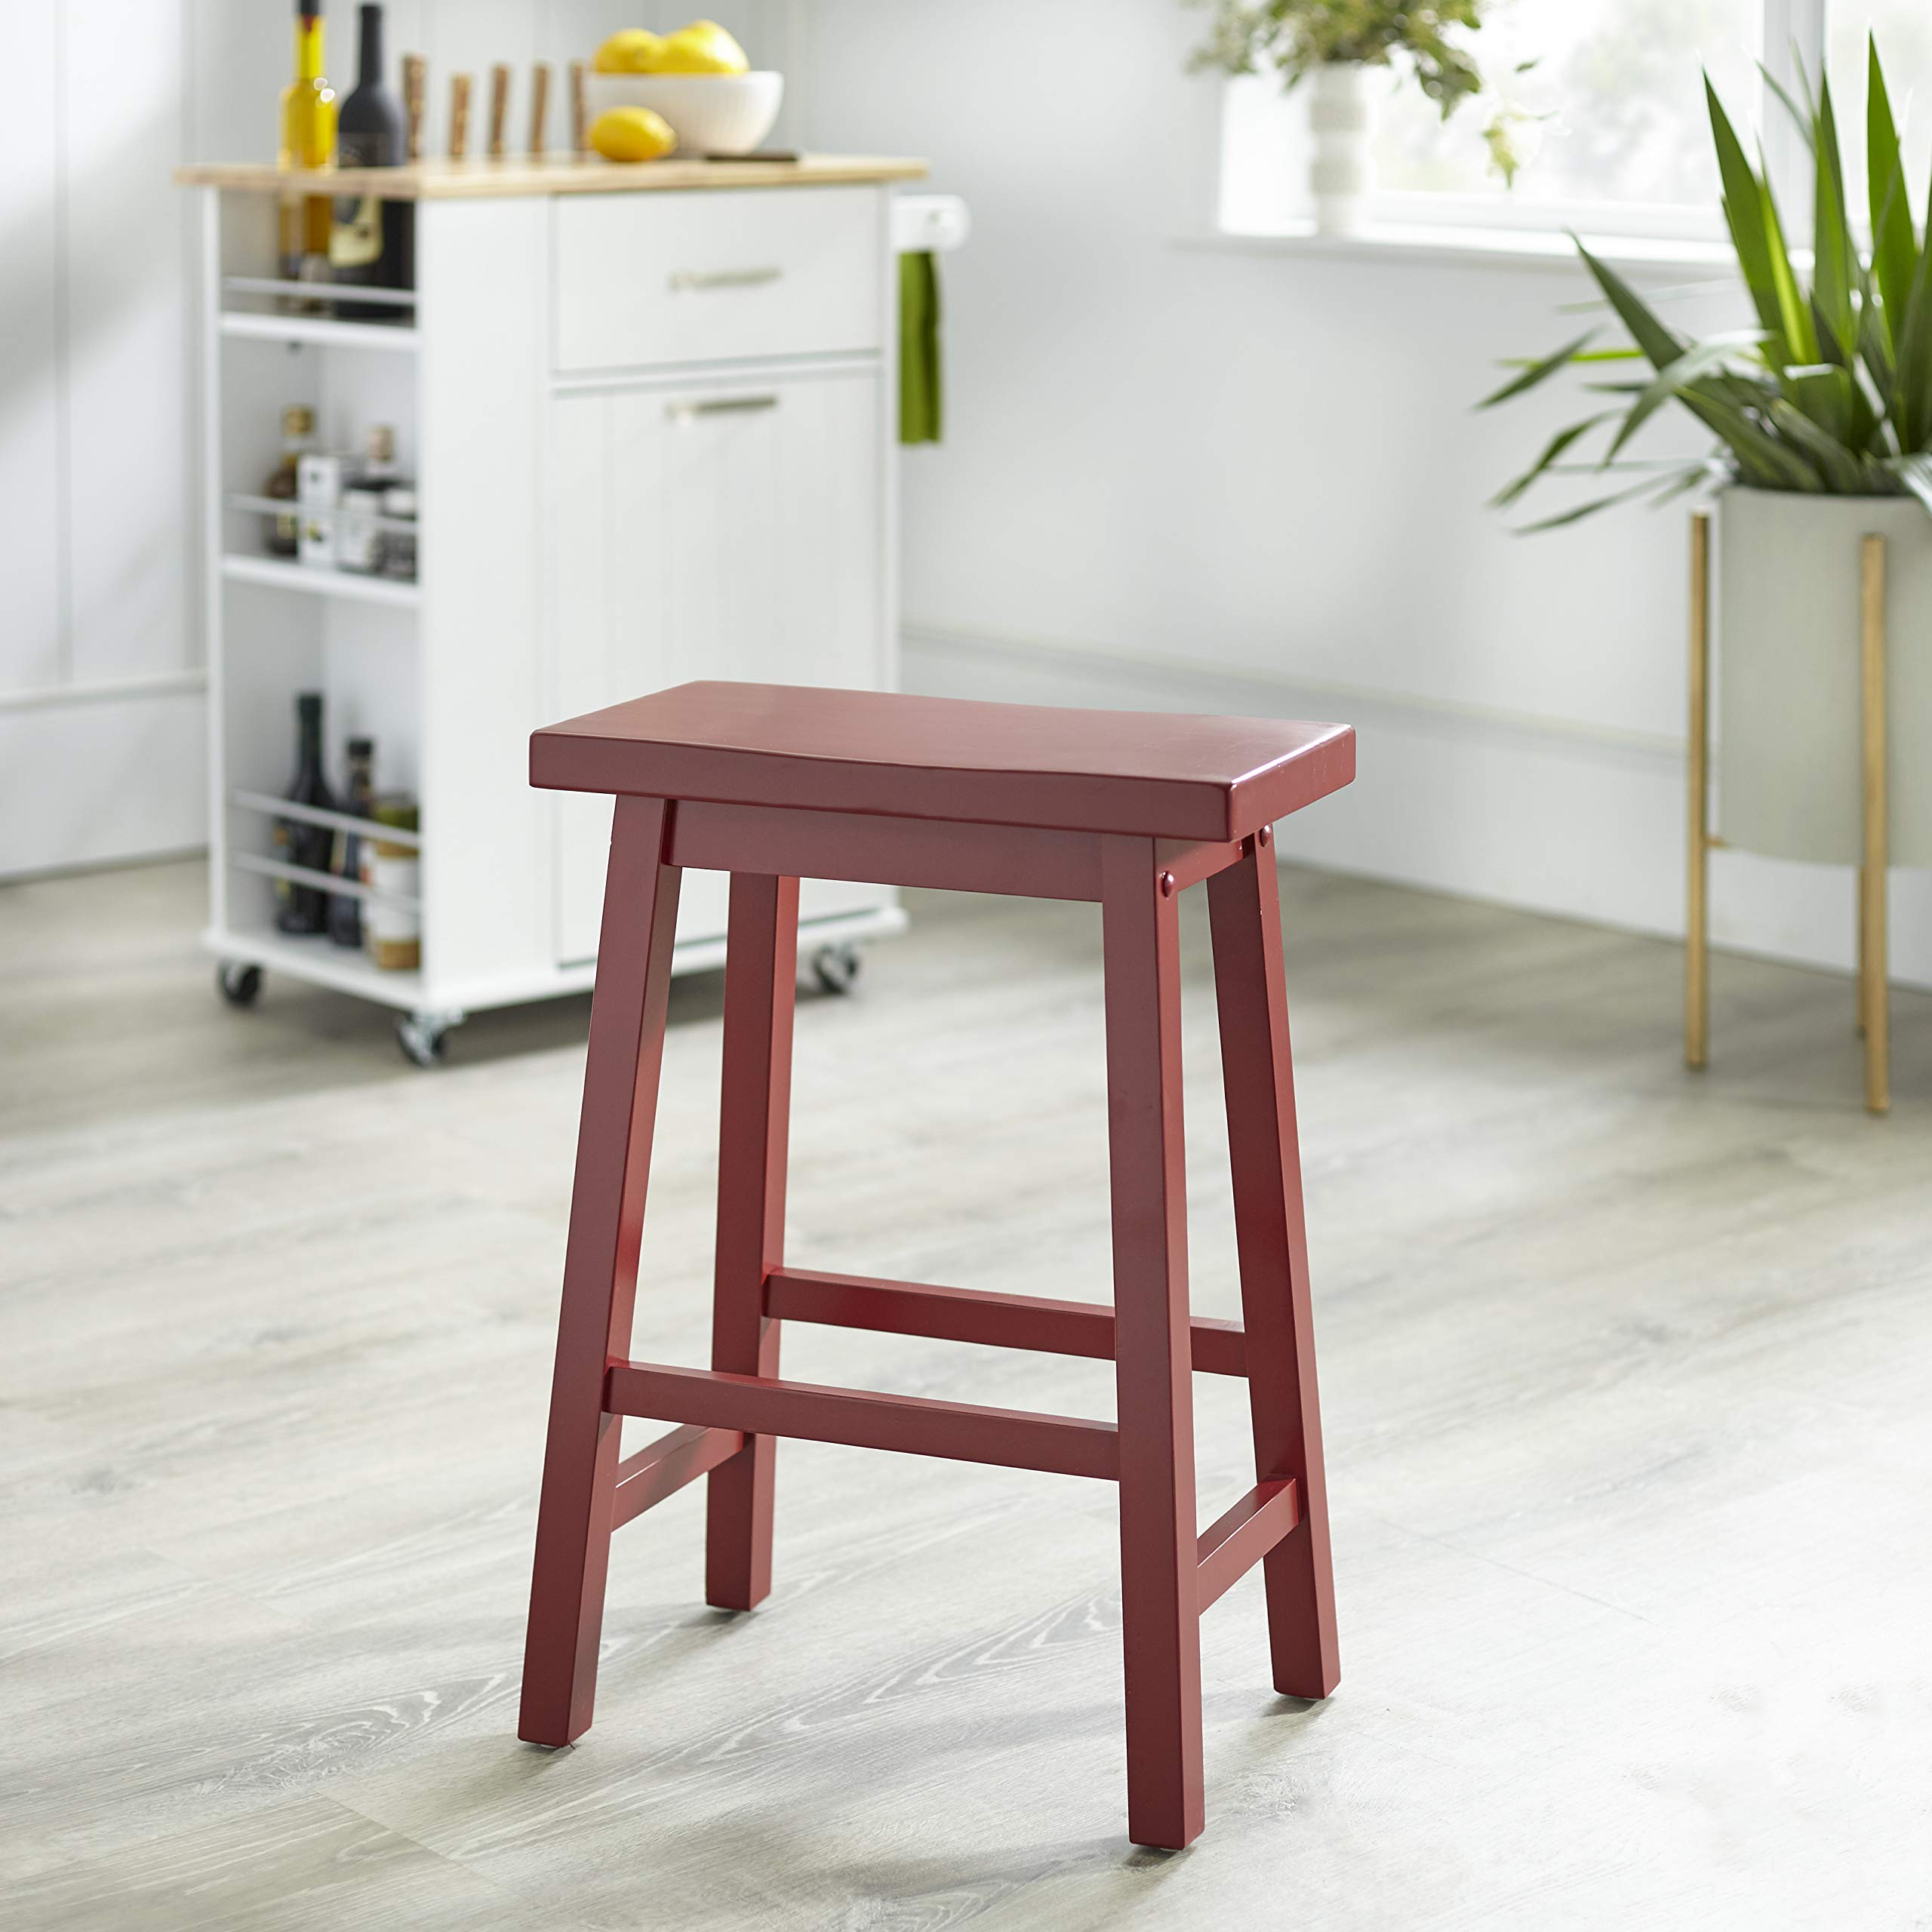 Target Marketing Systems 30-Inch Arizona Wooden Saddle Stool, Red by Target Marketing Systems